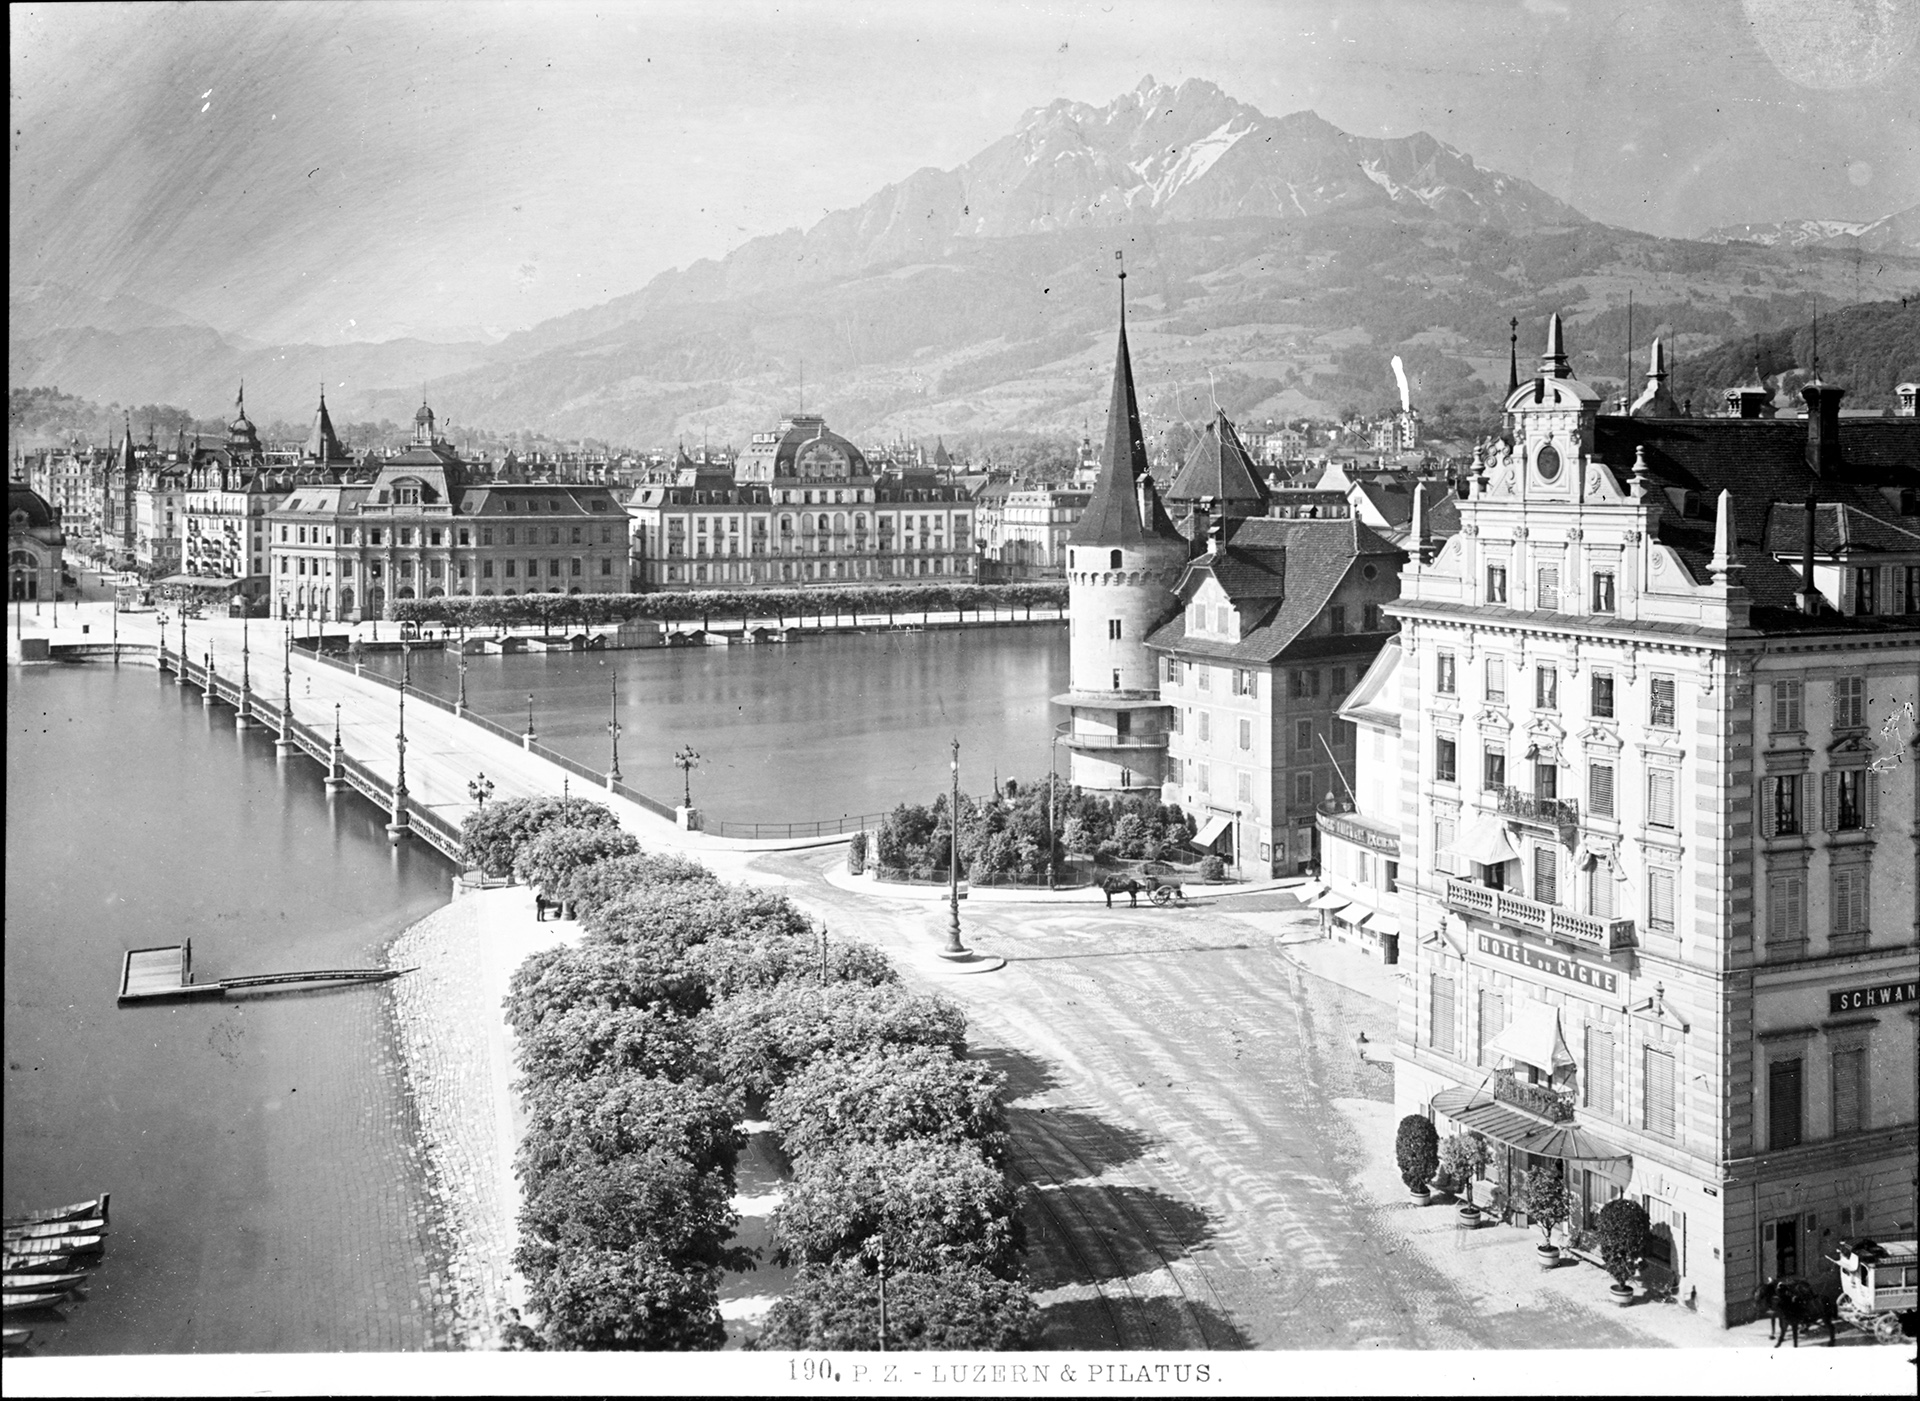 Original: 190 PZ - Luzern and Pilatus